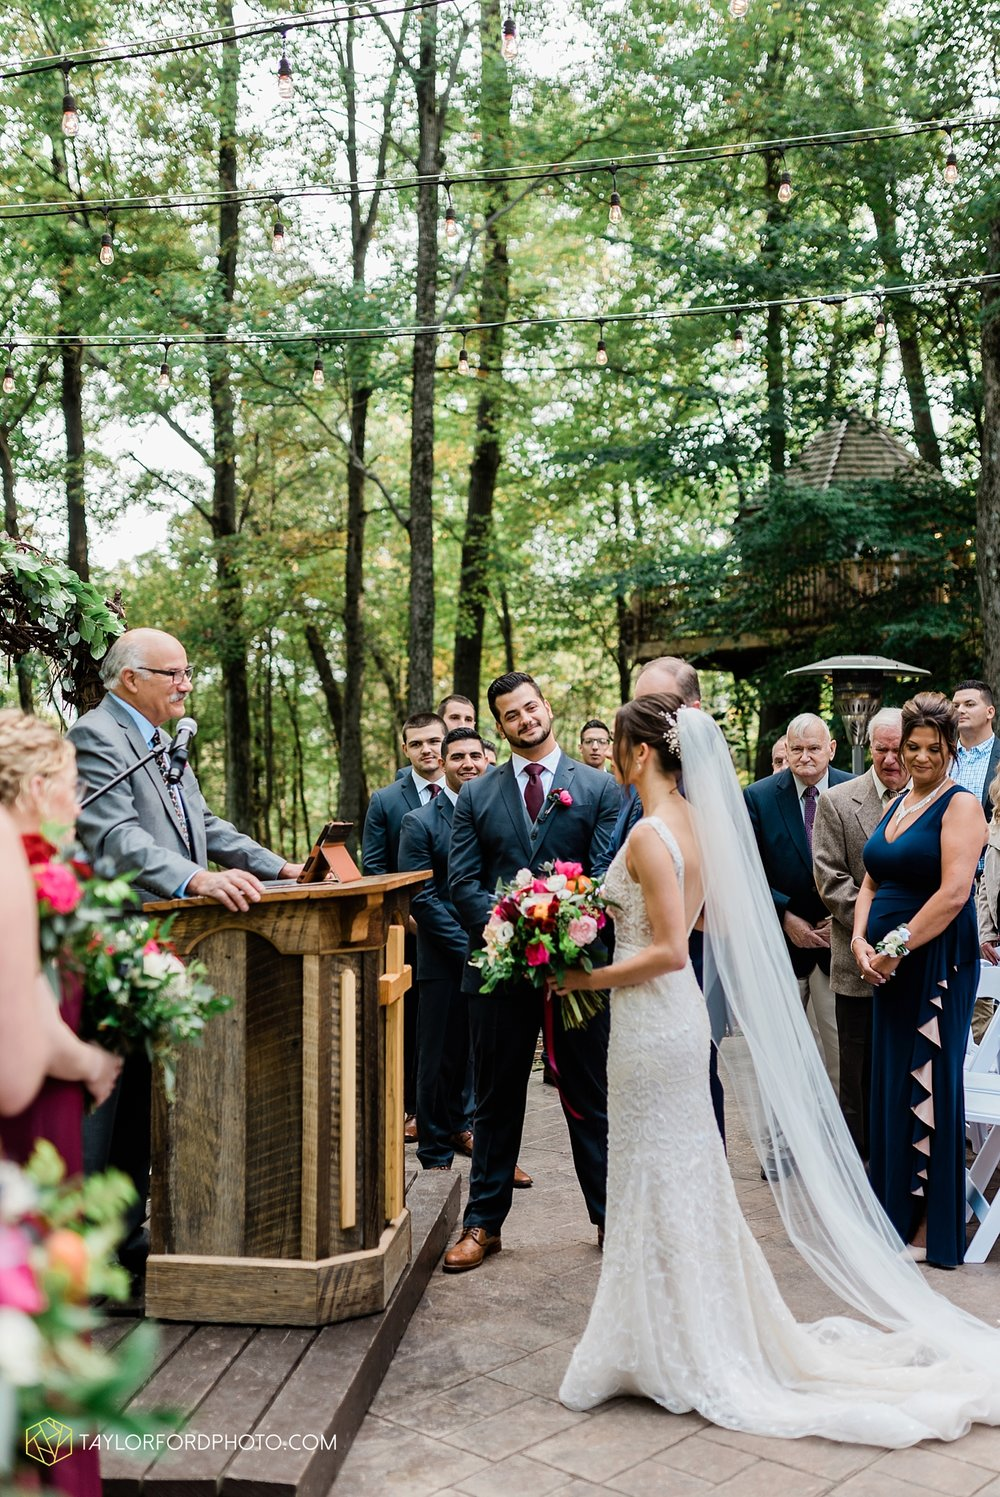 lexi-aric-benjamin-mohican-state-park-the-grand-barn-event-center-treehouse-wedding-cleveland-columbus-northeast-ohio-chicago-couple-wedding-photographer-taylor-ford-photography_5210.jpg